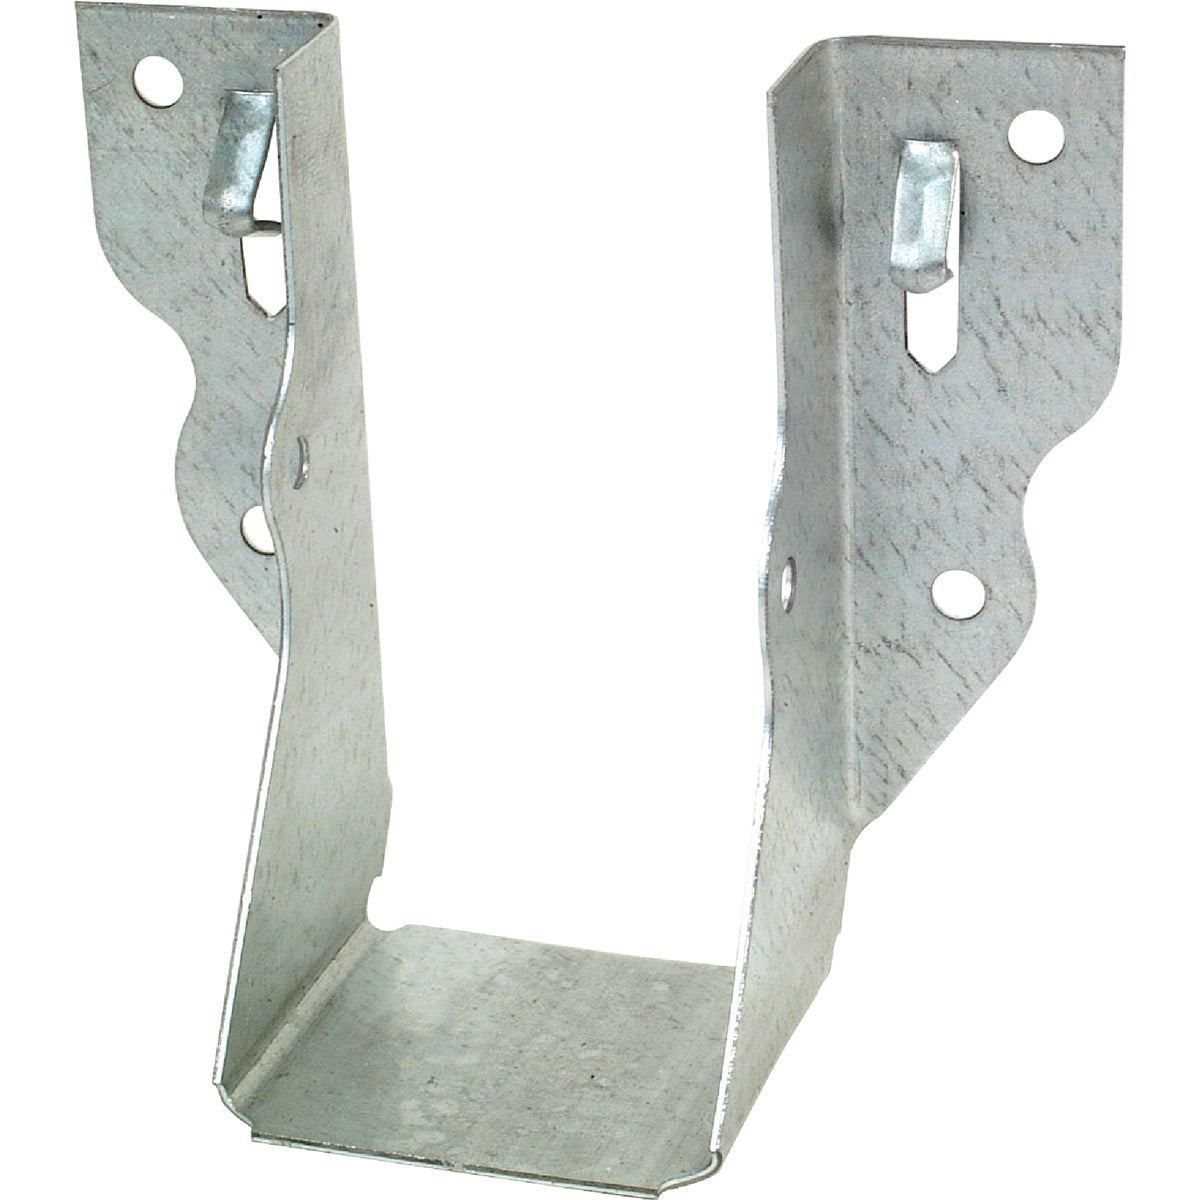 2X4 18GA JOIST HANGER - LU24R-18 by Simpson Strong Tie